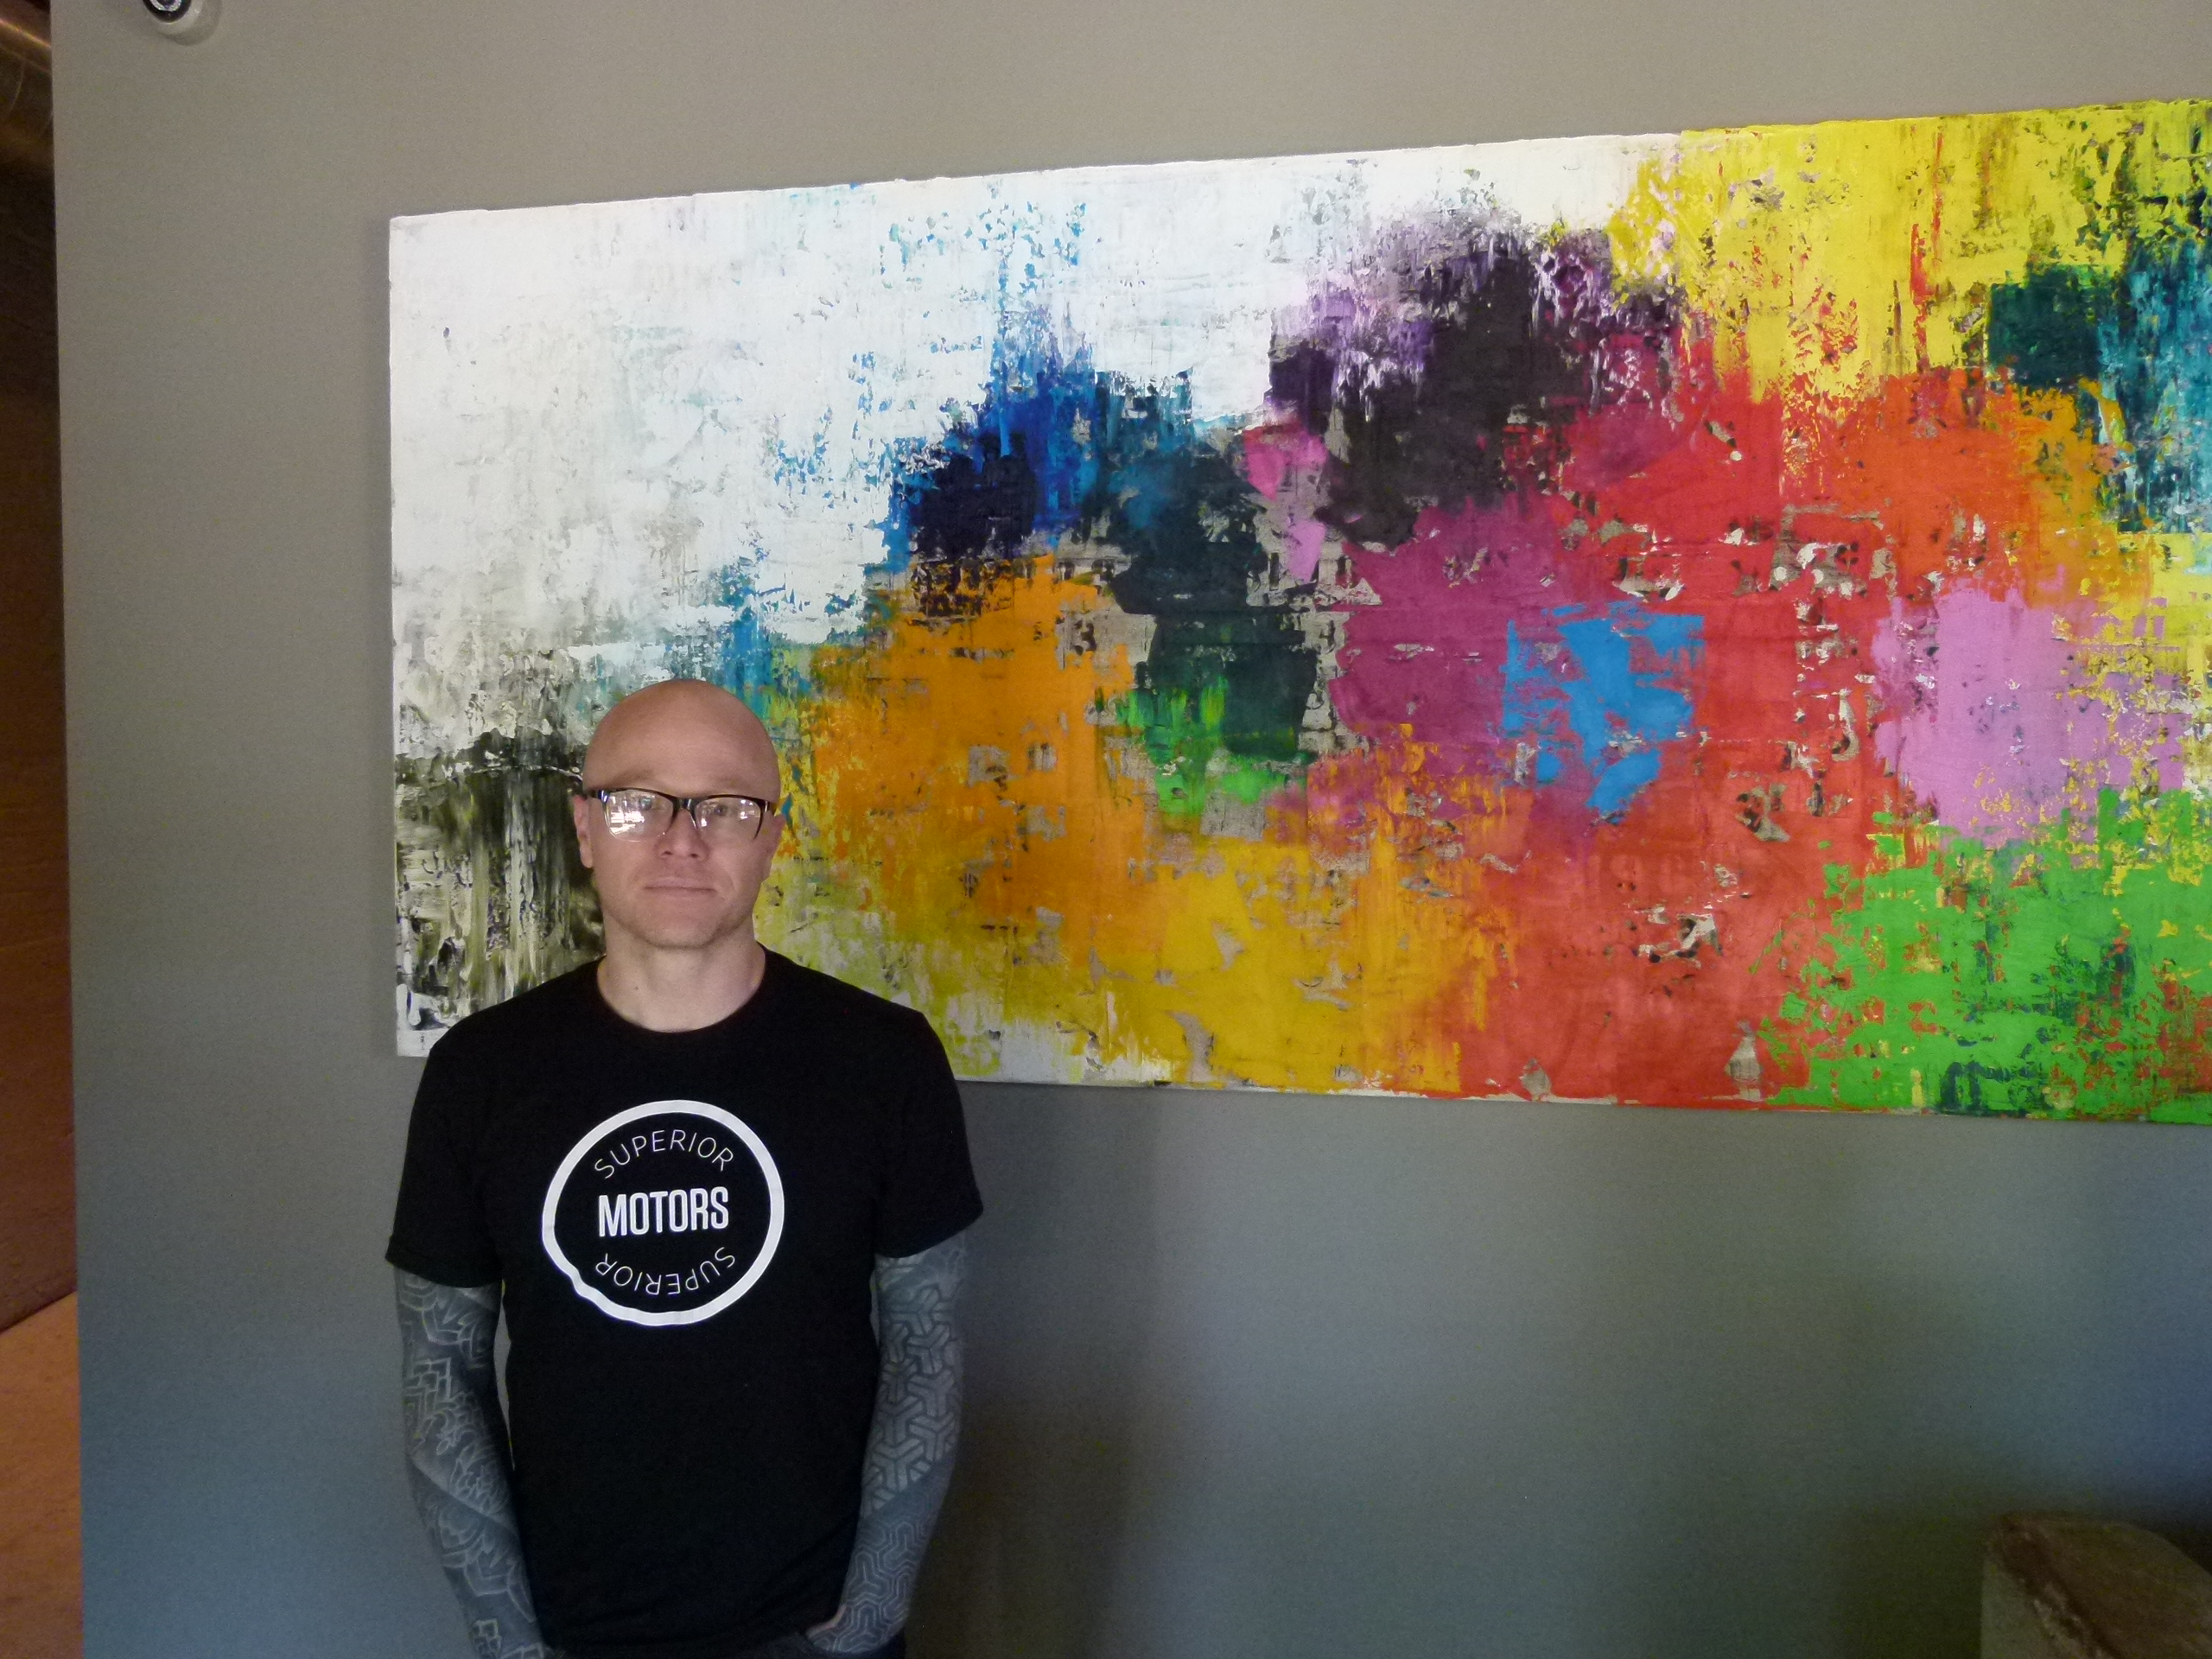 Chef/owner Kevin Sousa at the host station of Superior Motors in front of a painting by Pittsburgh artist Mia Tarducci.